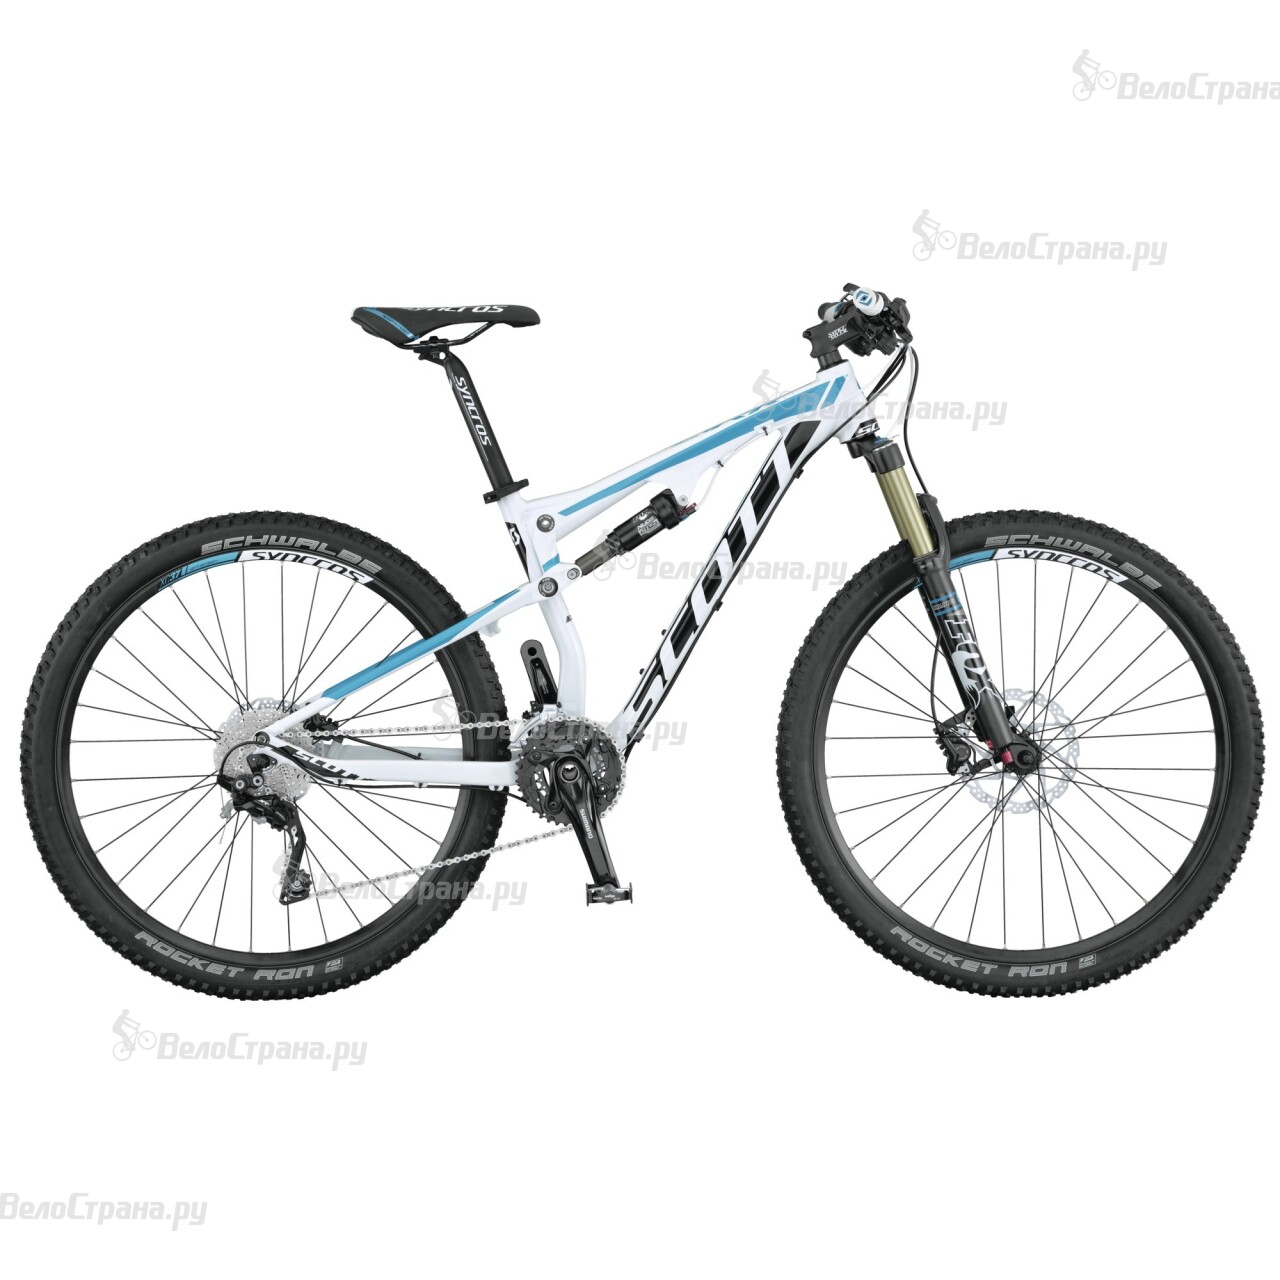 Велосипед Scott Contessa Spark 700 (2015) велосипед scott contessa genius 700 2015